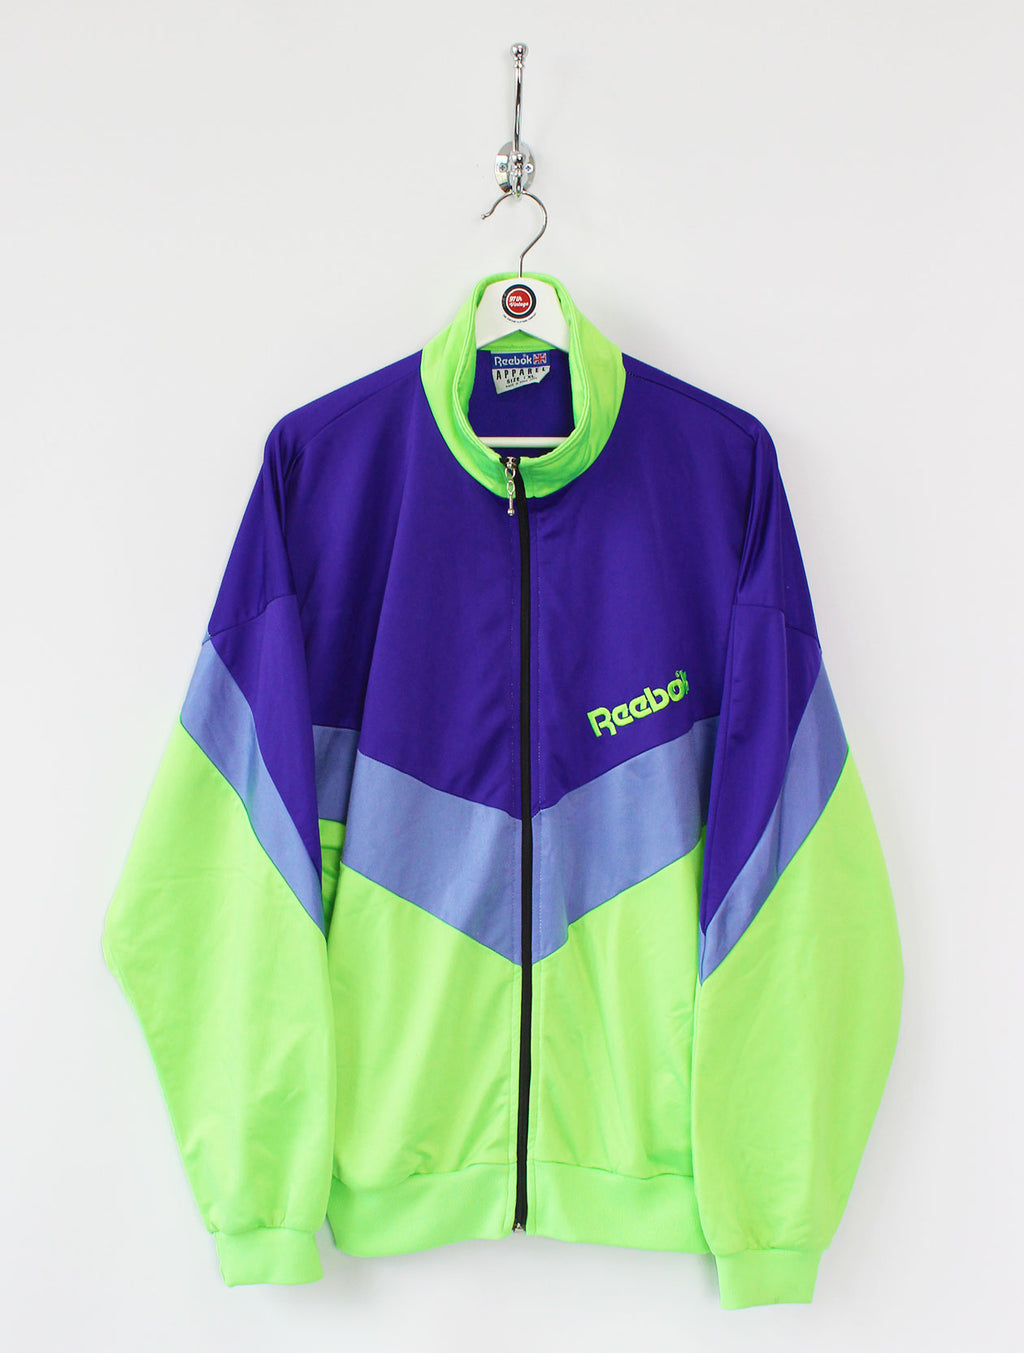 Reebok Track Jacket (XL)